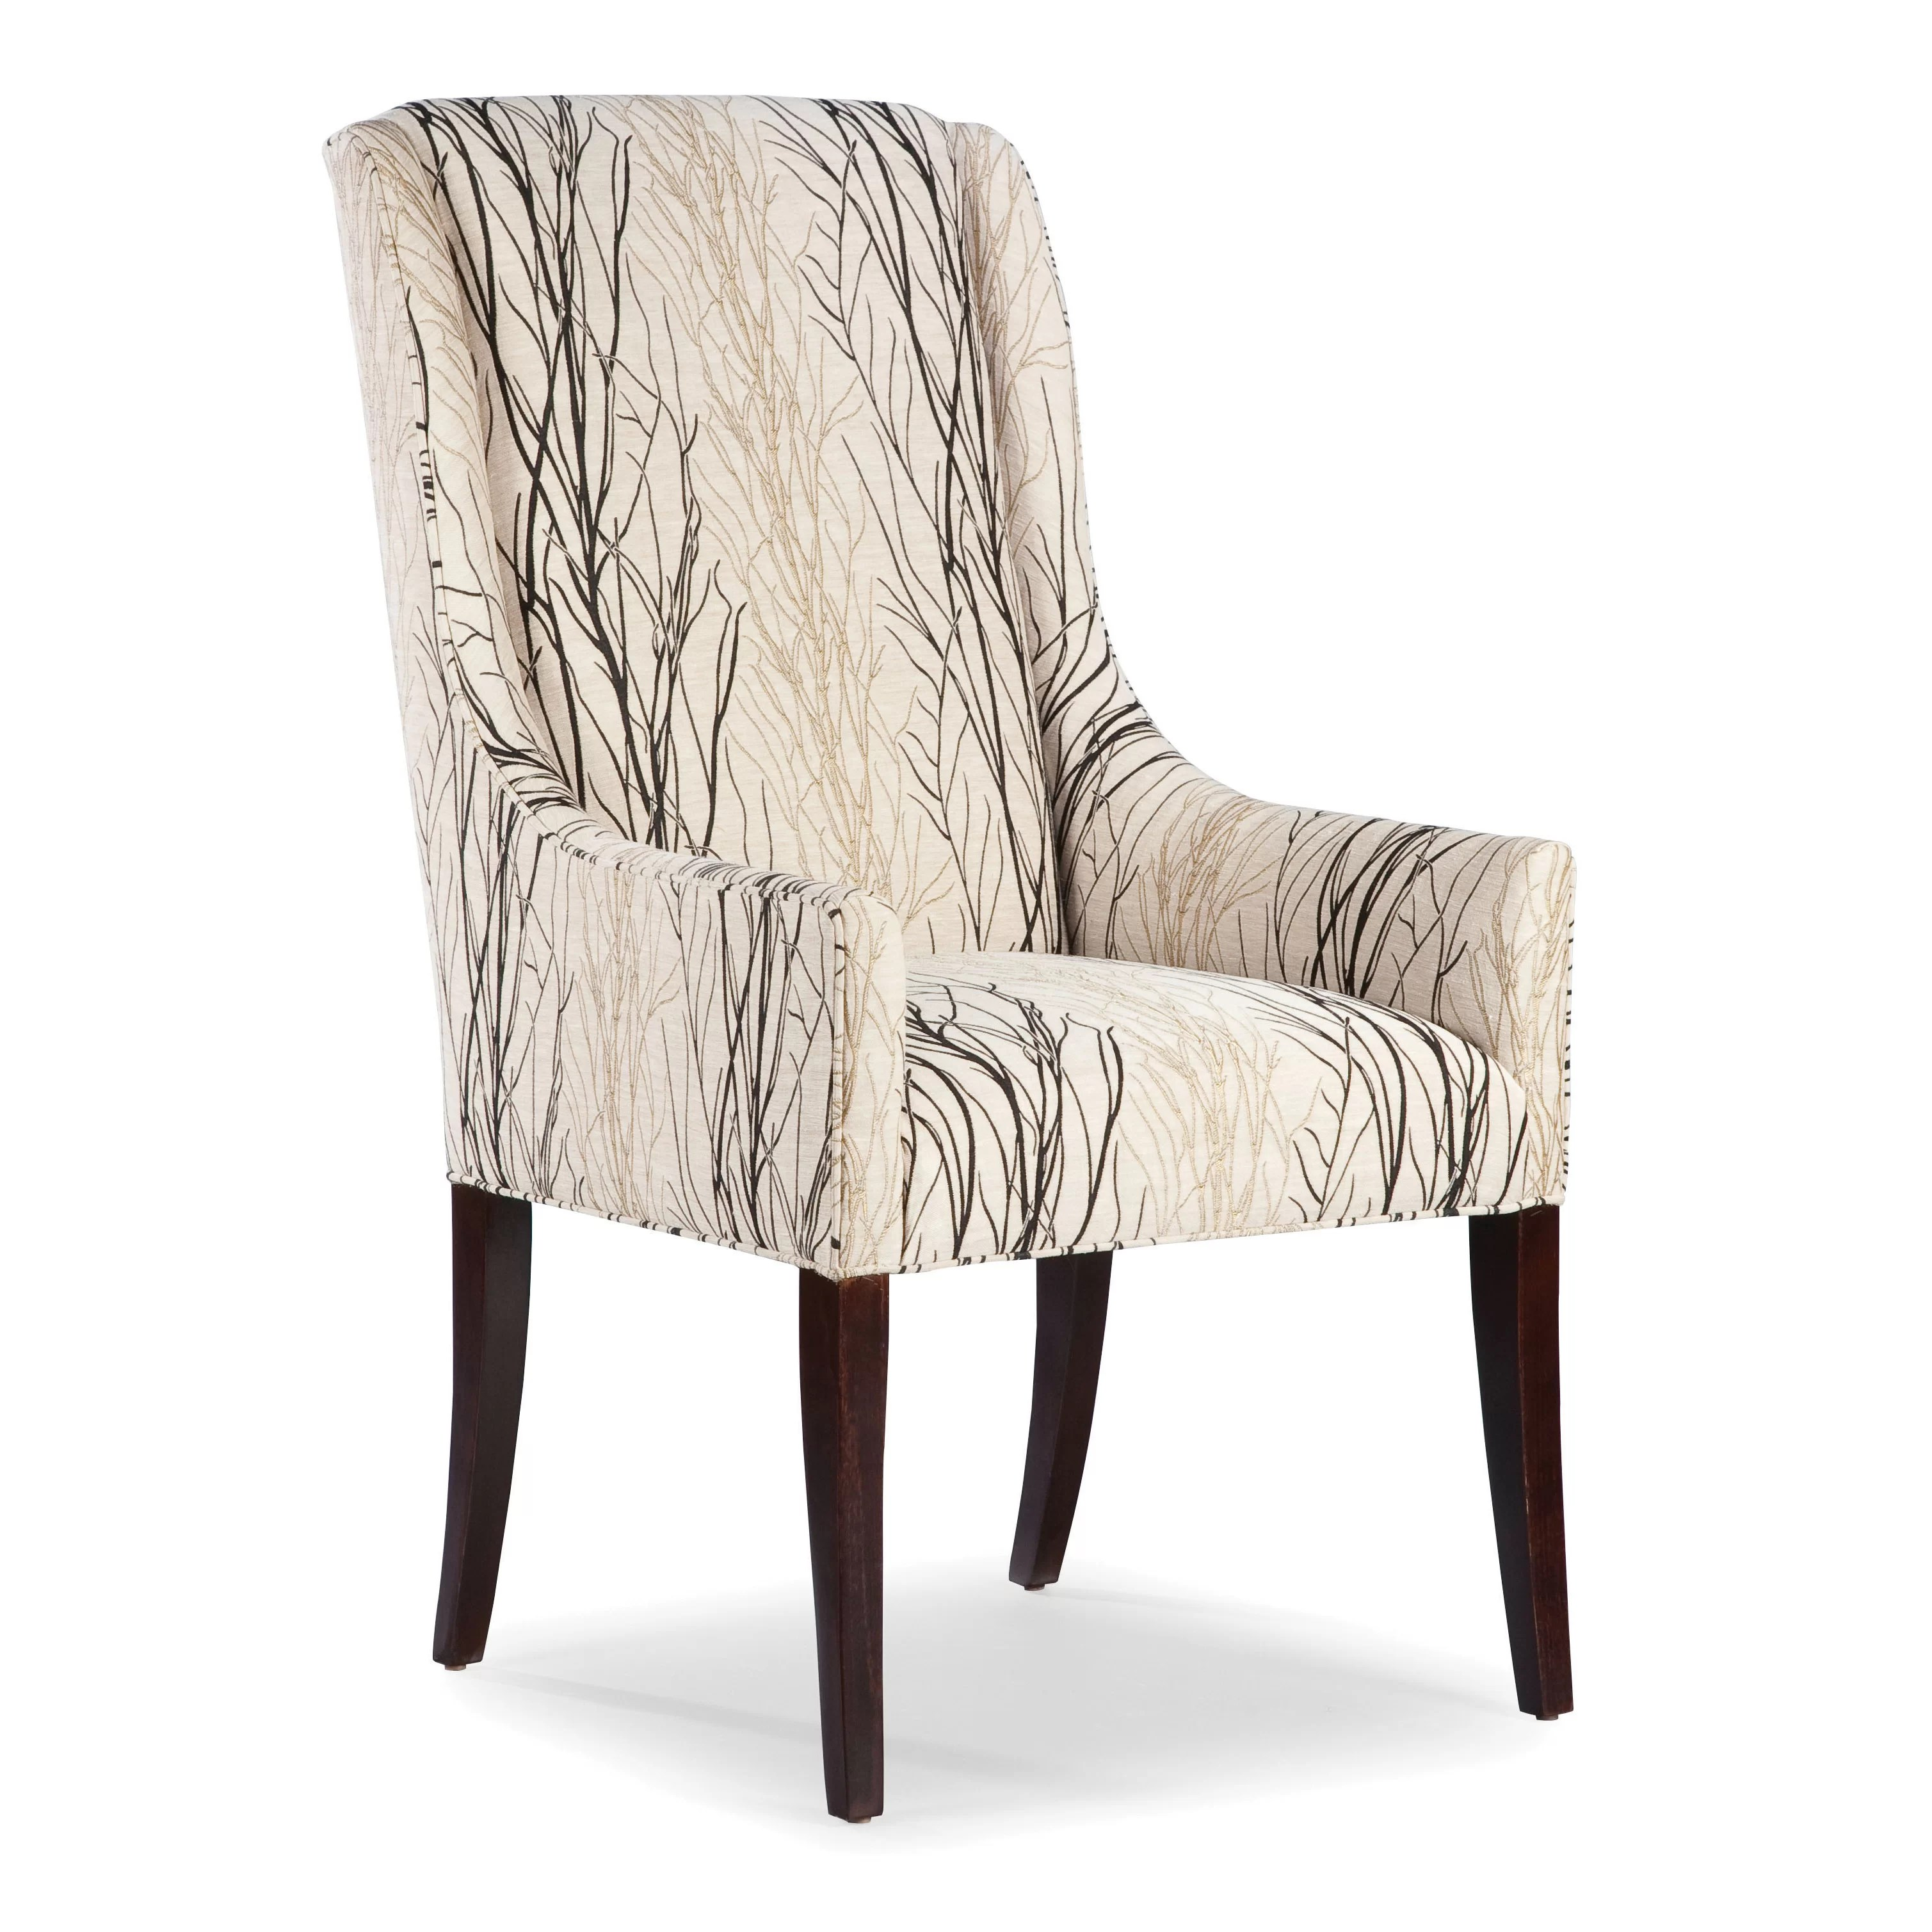 keyword wayfair kitchen chairs QUICK VIEW High Back Dining Arm Chair